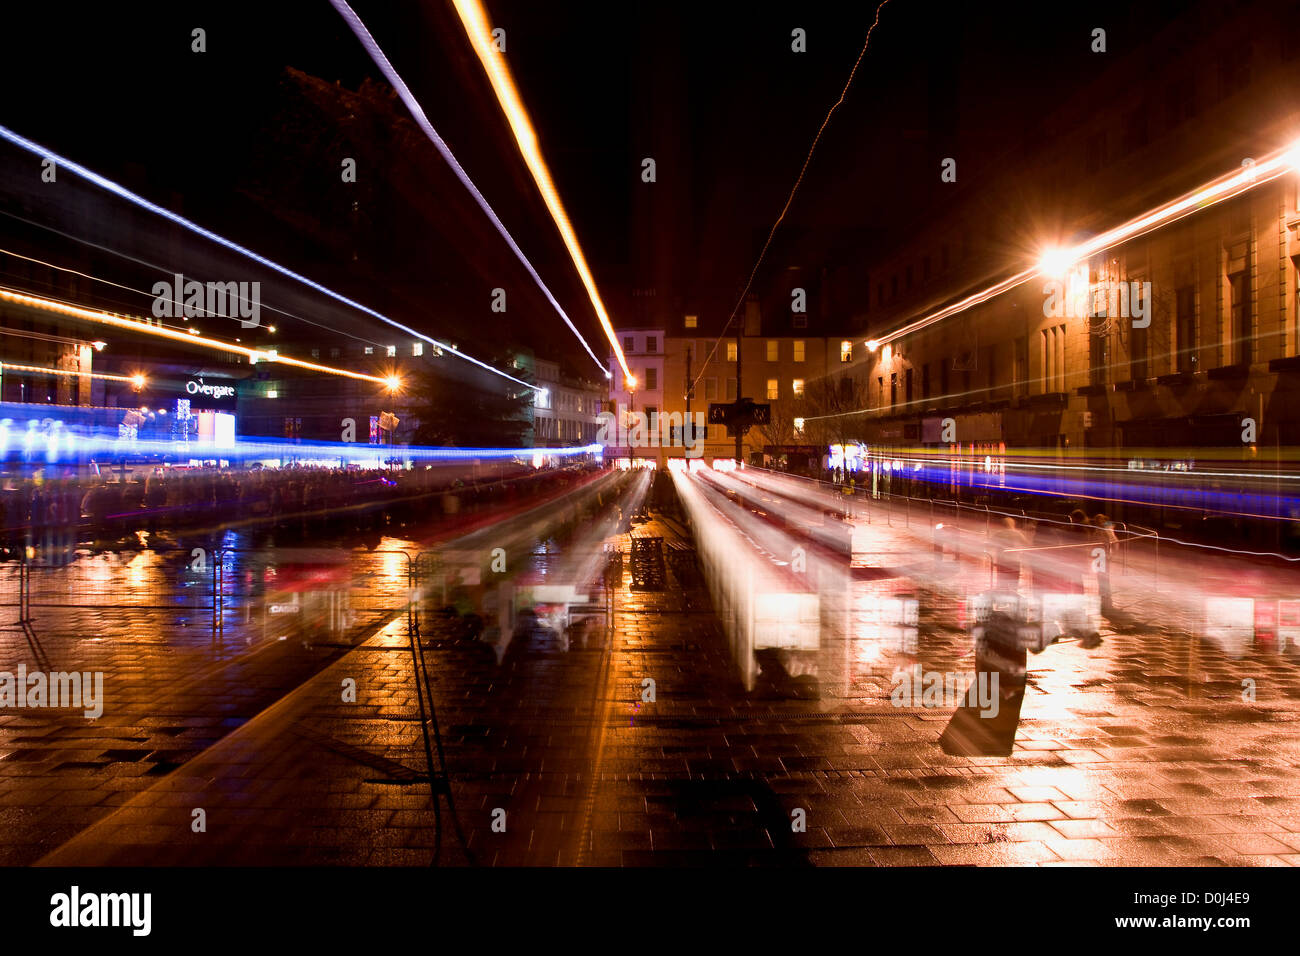 Crowds and street light reflections illuminating the city at night in the rain while using camera technique in Dundee,UK - Stock Image